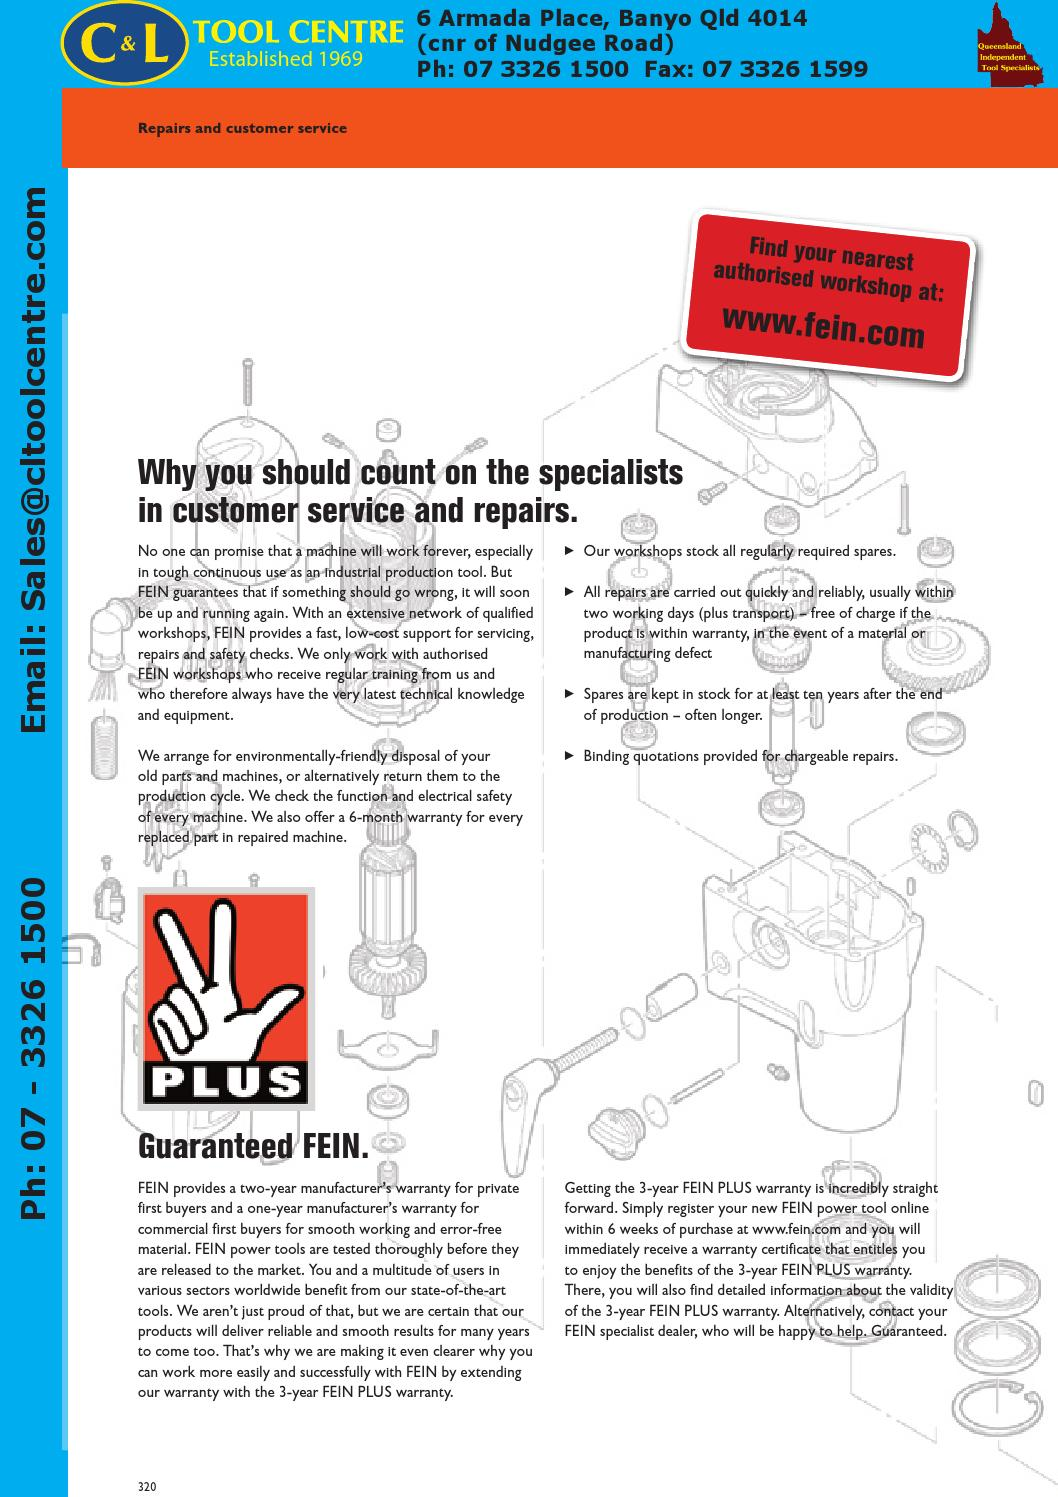 Fein Power Tools & Accessories by C&L Tool Centre Pty Ltd